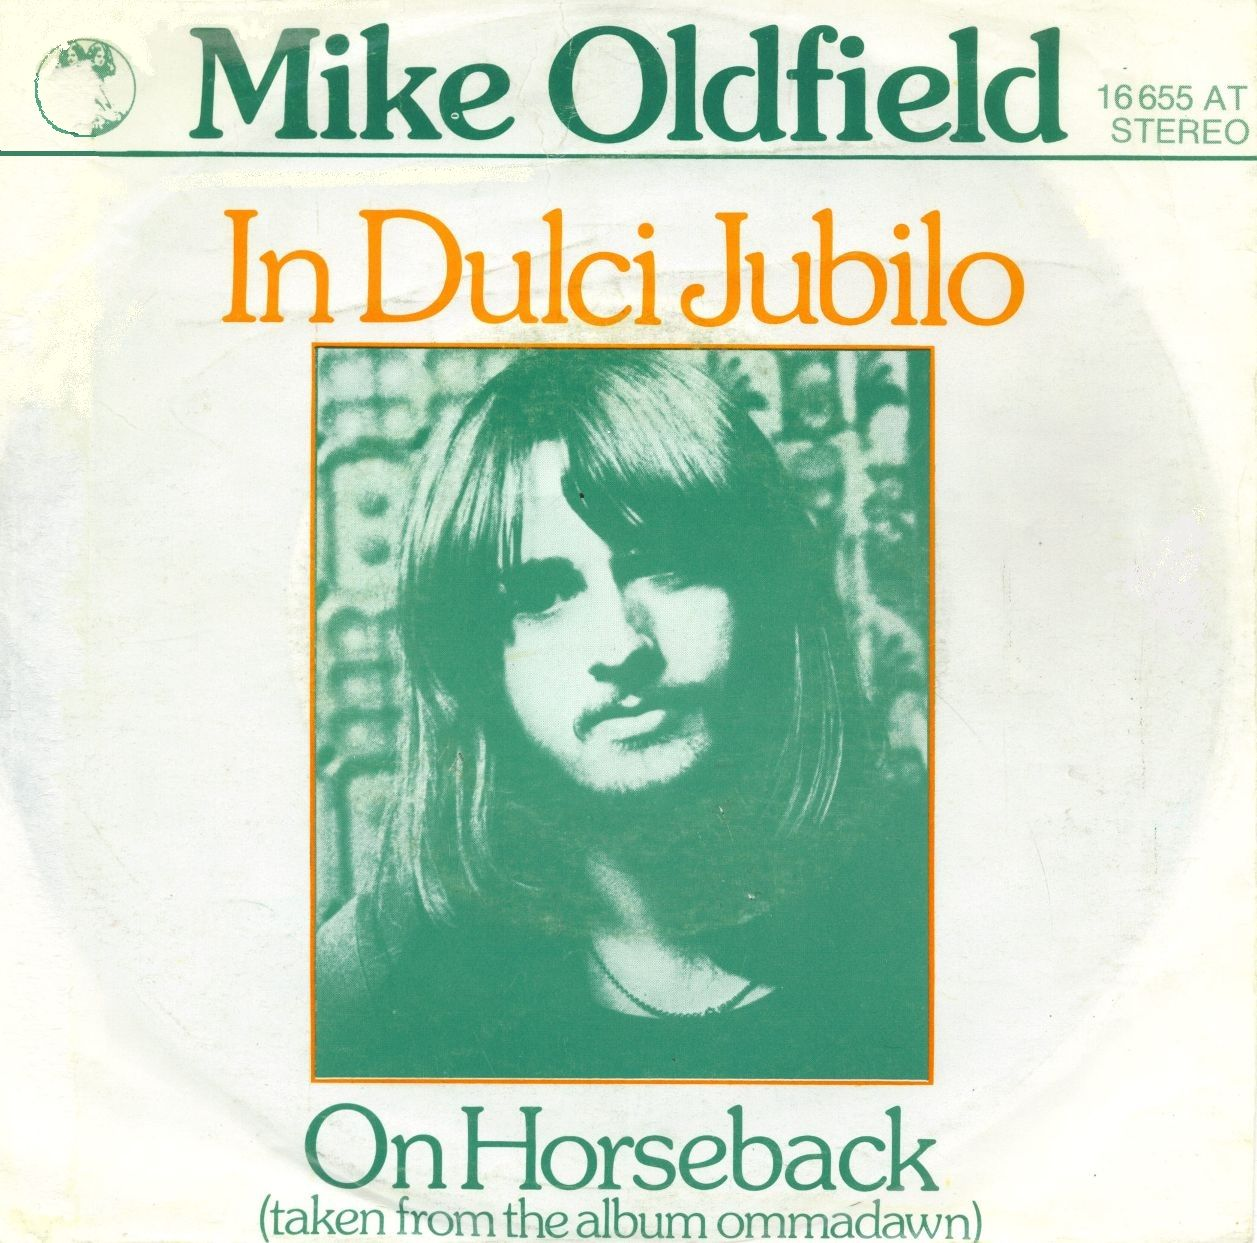 oldfield singles Listen to songs from the album return to ommadawn - single, including mike oldfield's stream (theme from return to ommadawn, pt 1), and mike oldfield's stream (theme from return to ommadawn, pt 2).